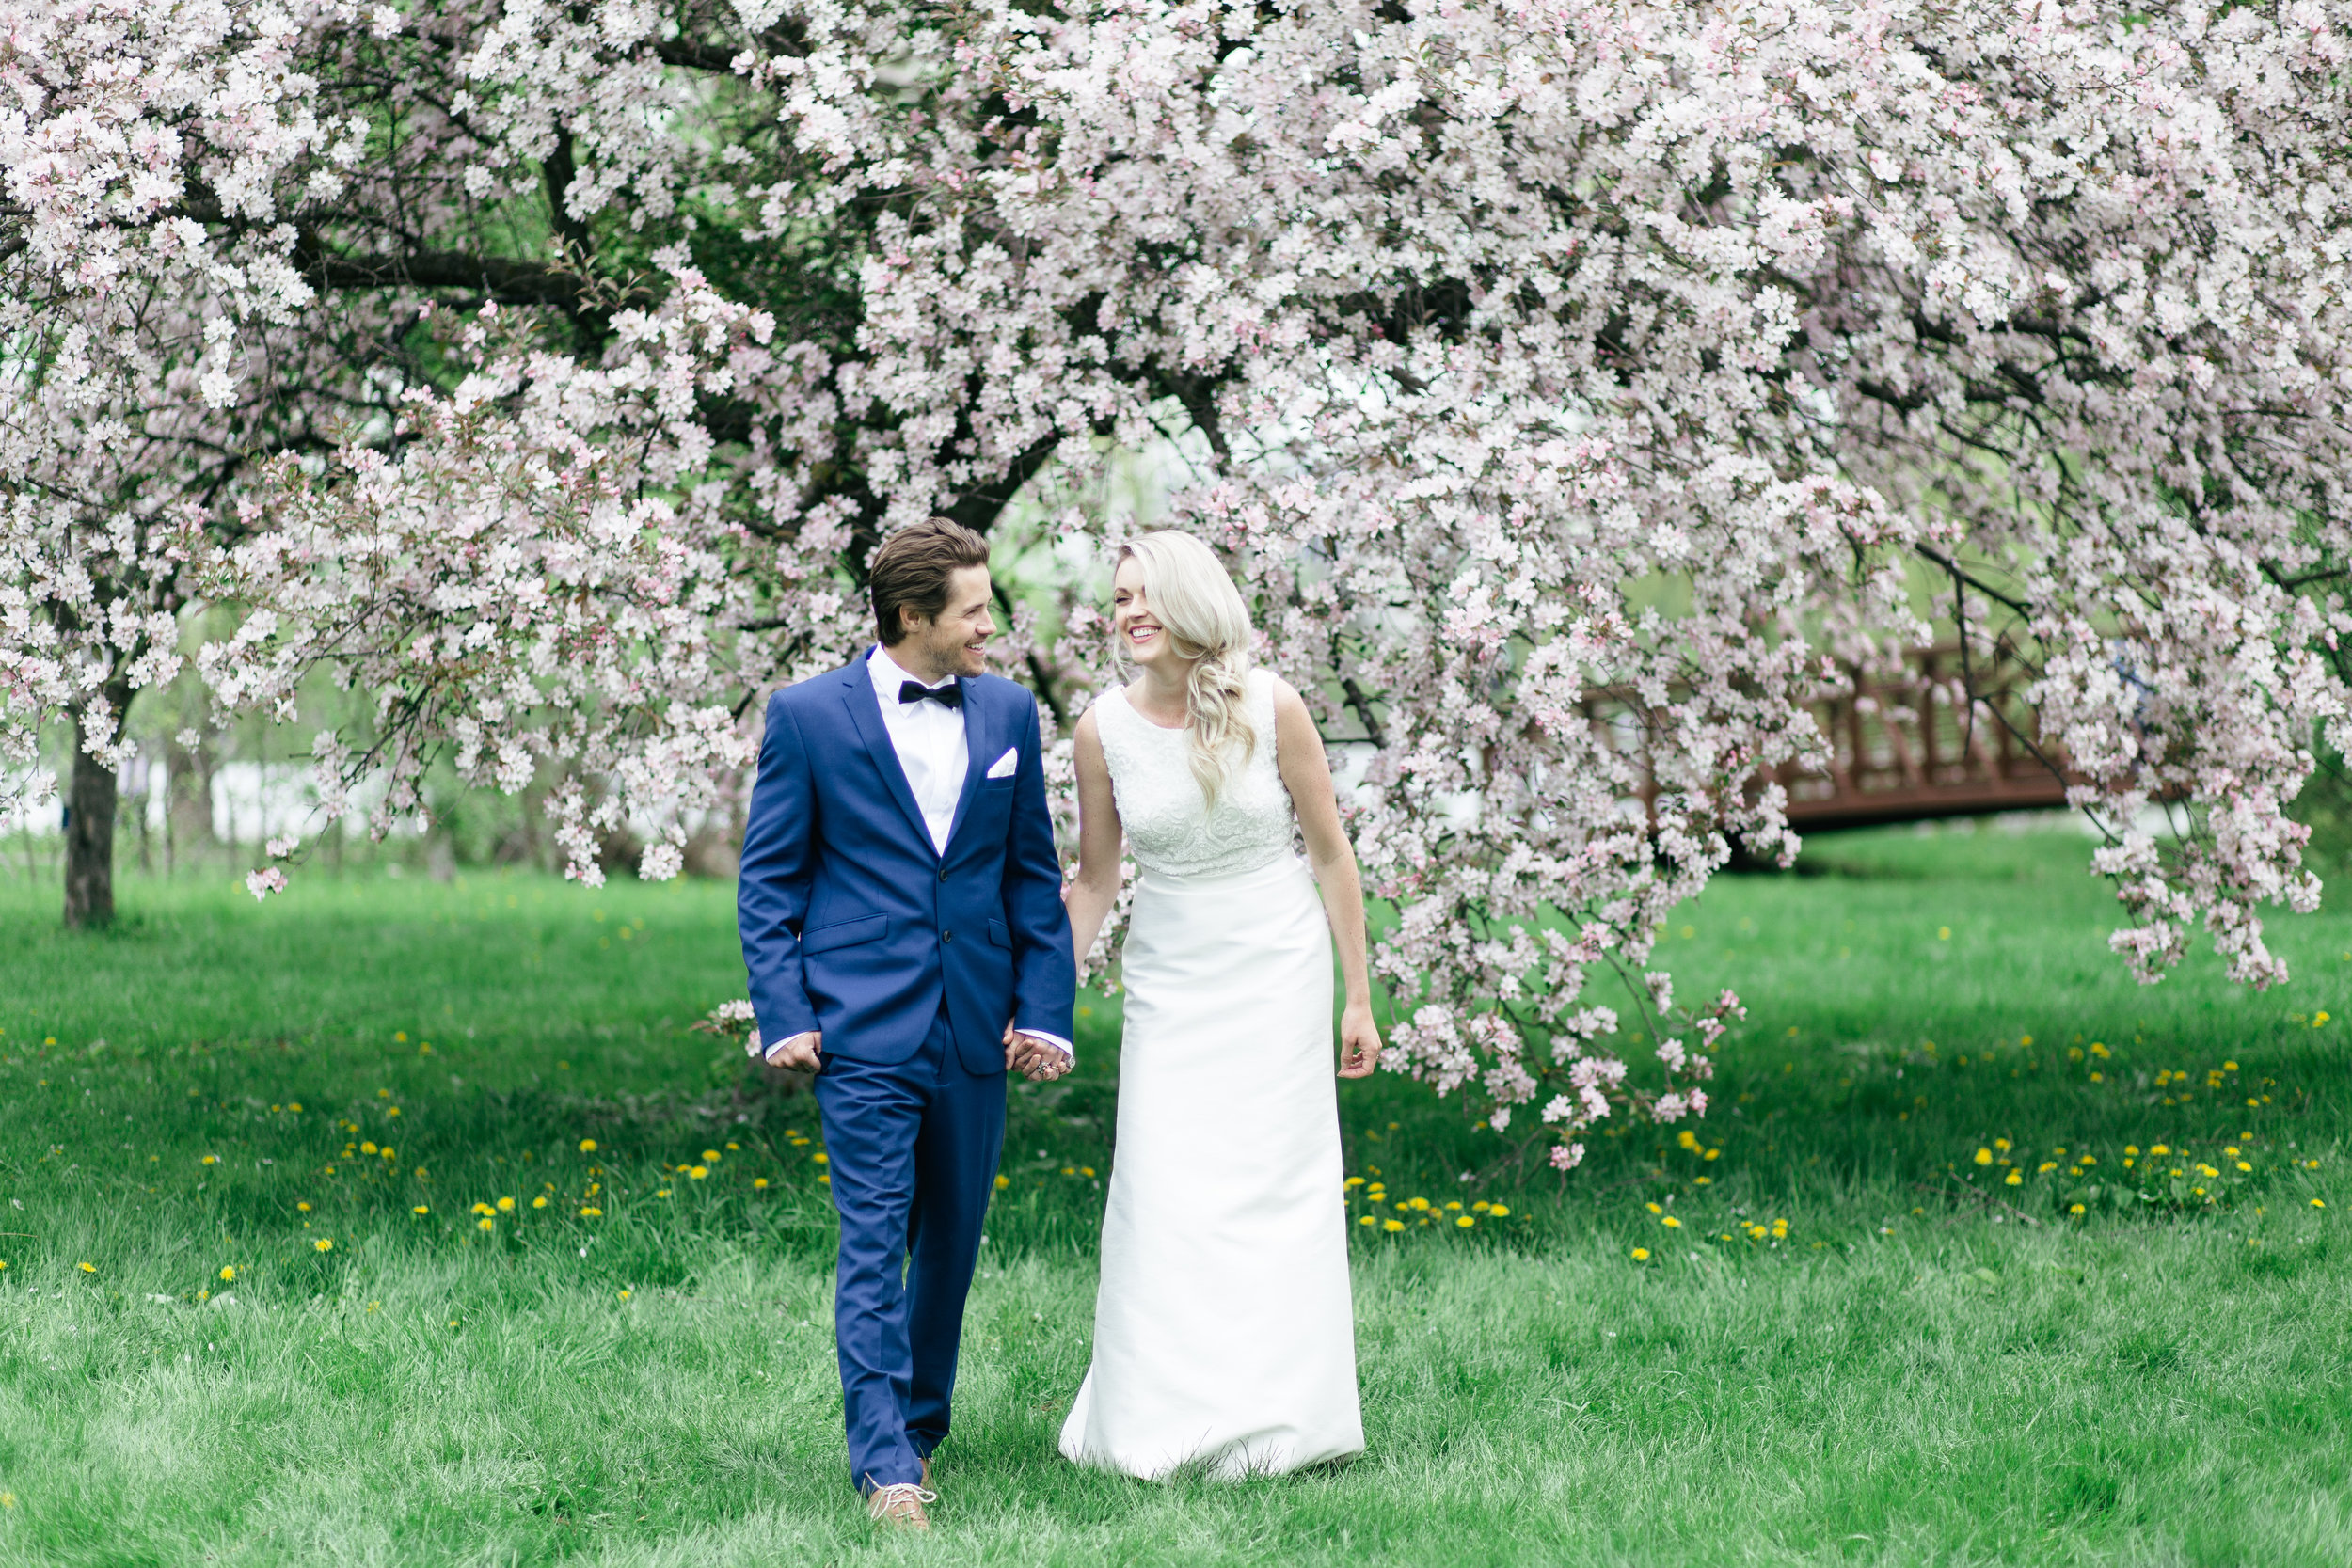 Cherry Blossom Bridal Sneak Peek-5.jpg